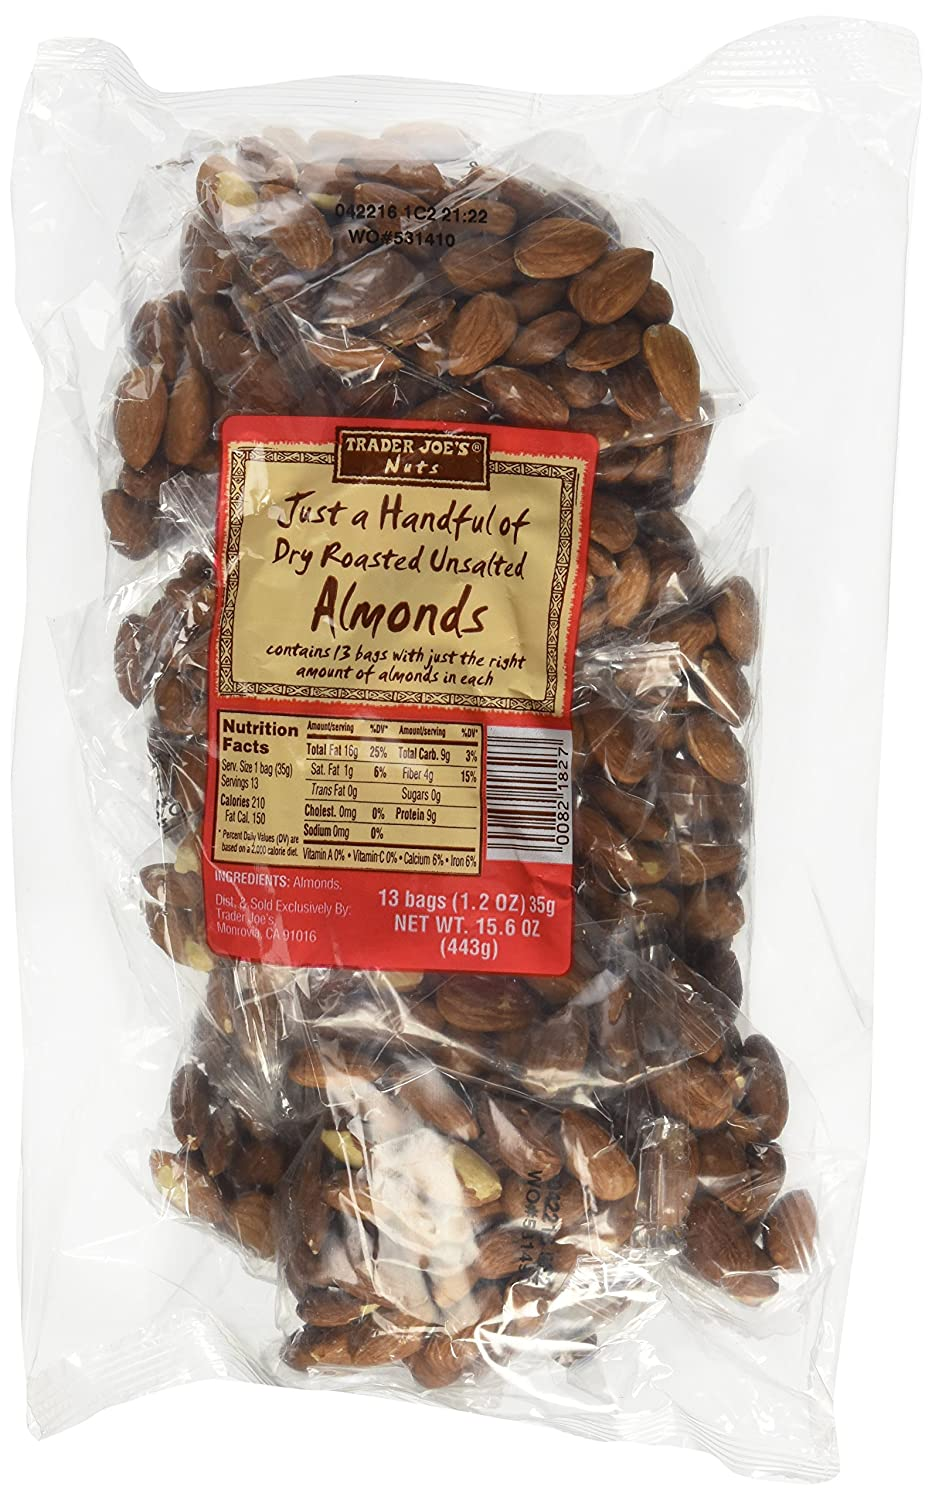 Trader Joes Just a Handful of Dry Roasted Unsalted Almonds 2 Pack/26 Individual Bags